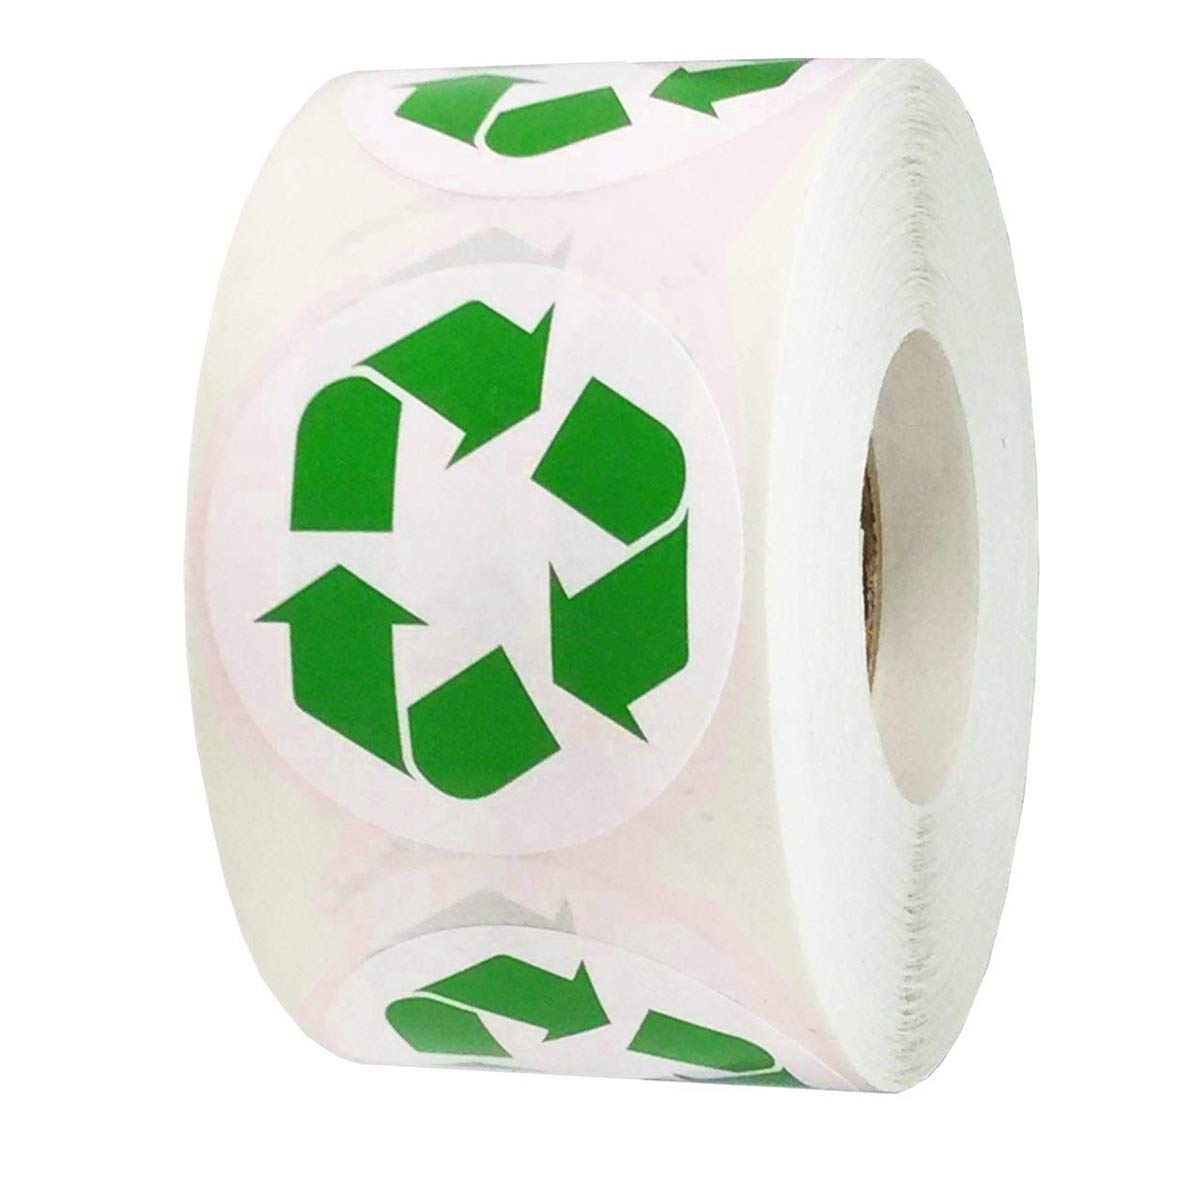 Pop Resin 1.5'' Inch Recycle Logo Stickers Round Recycling Symbol LabelsSelf Adhesive Indoor and Outdoor Stickers 500 Per Roll